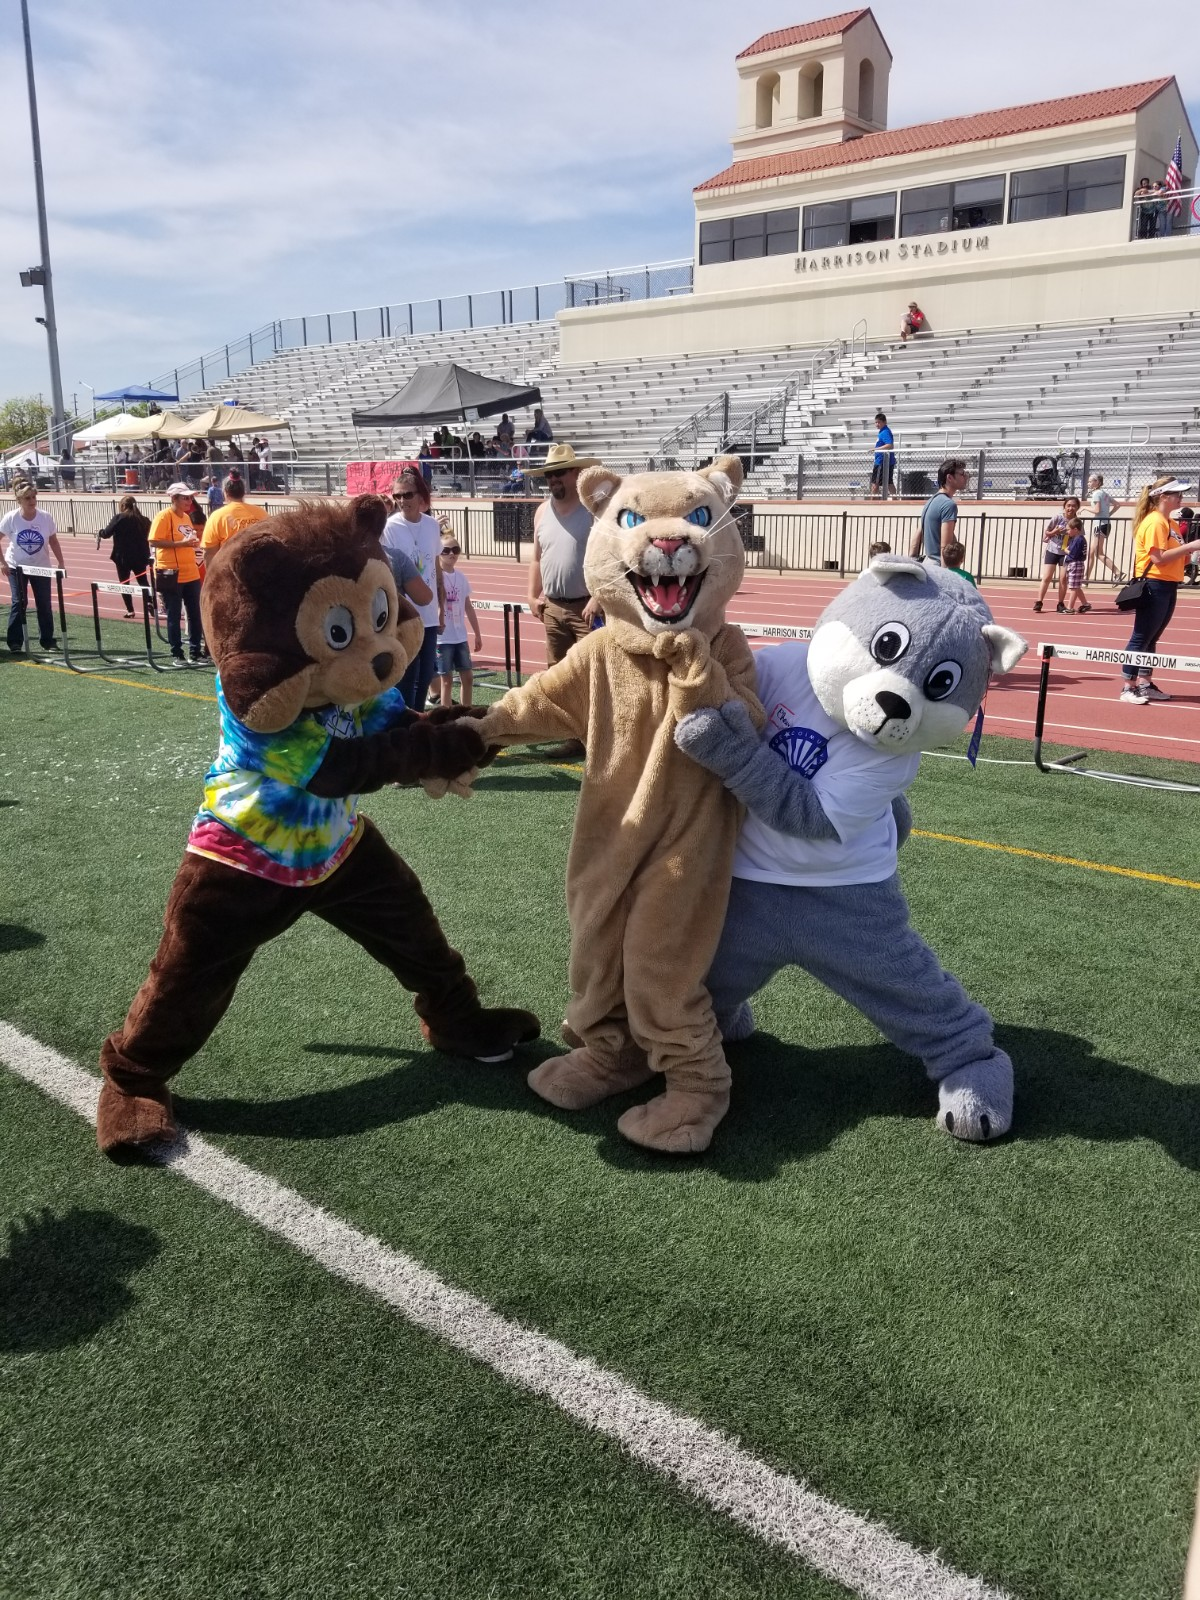 Our Mascot being persuaded to race the other mascots.